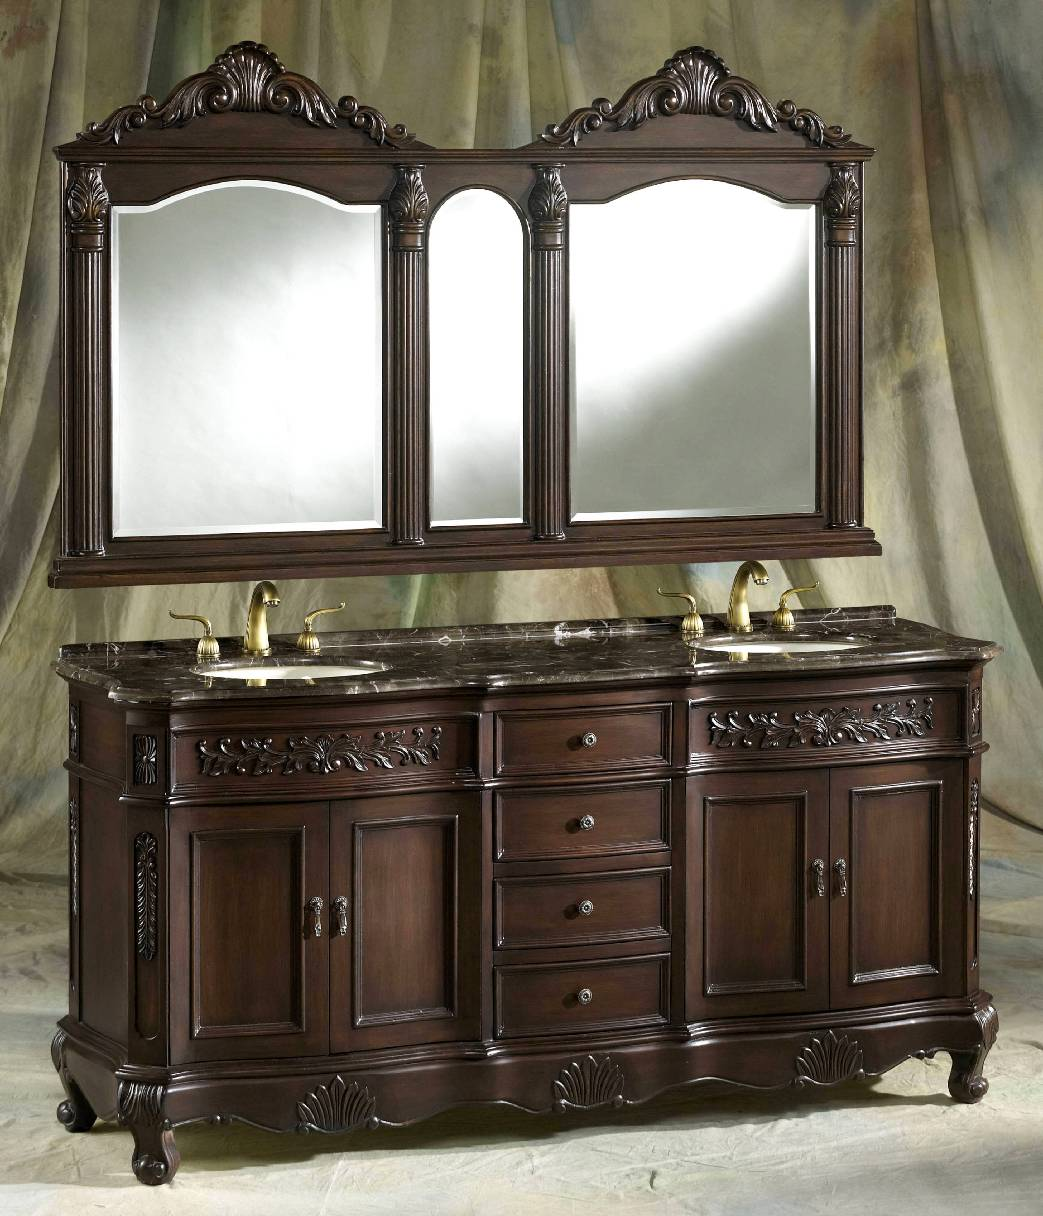 72 Pressley Vanity 72 Inch Double Vanity Dark Sink Vanity